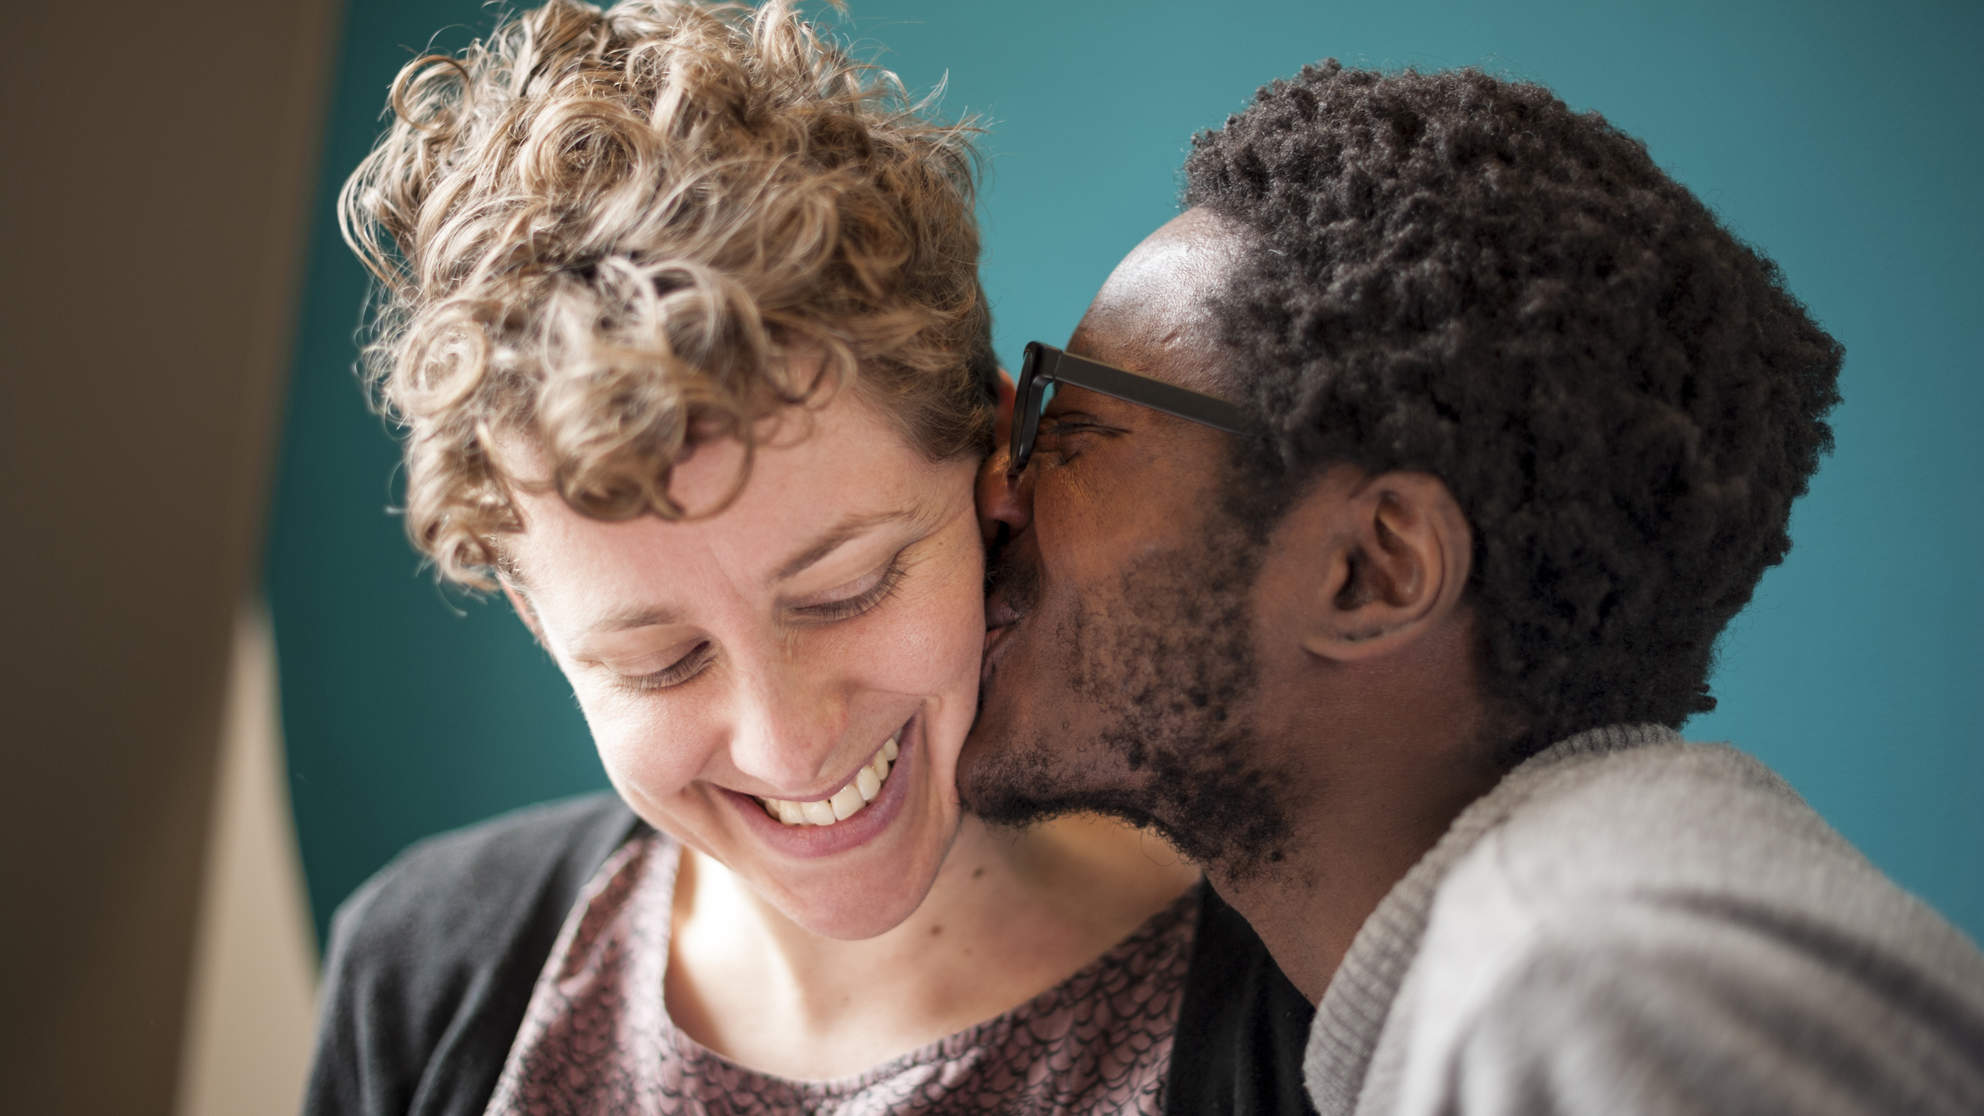 This Is When Your Marriage Will Be Happiest, Science Says